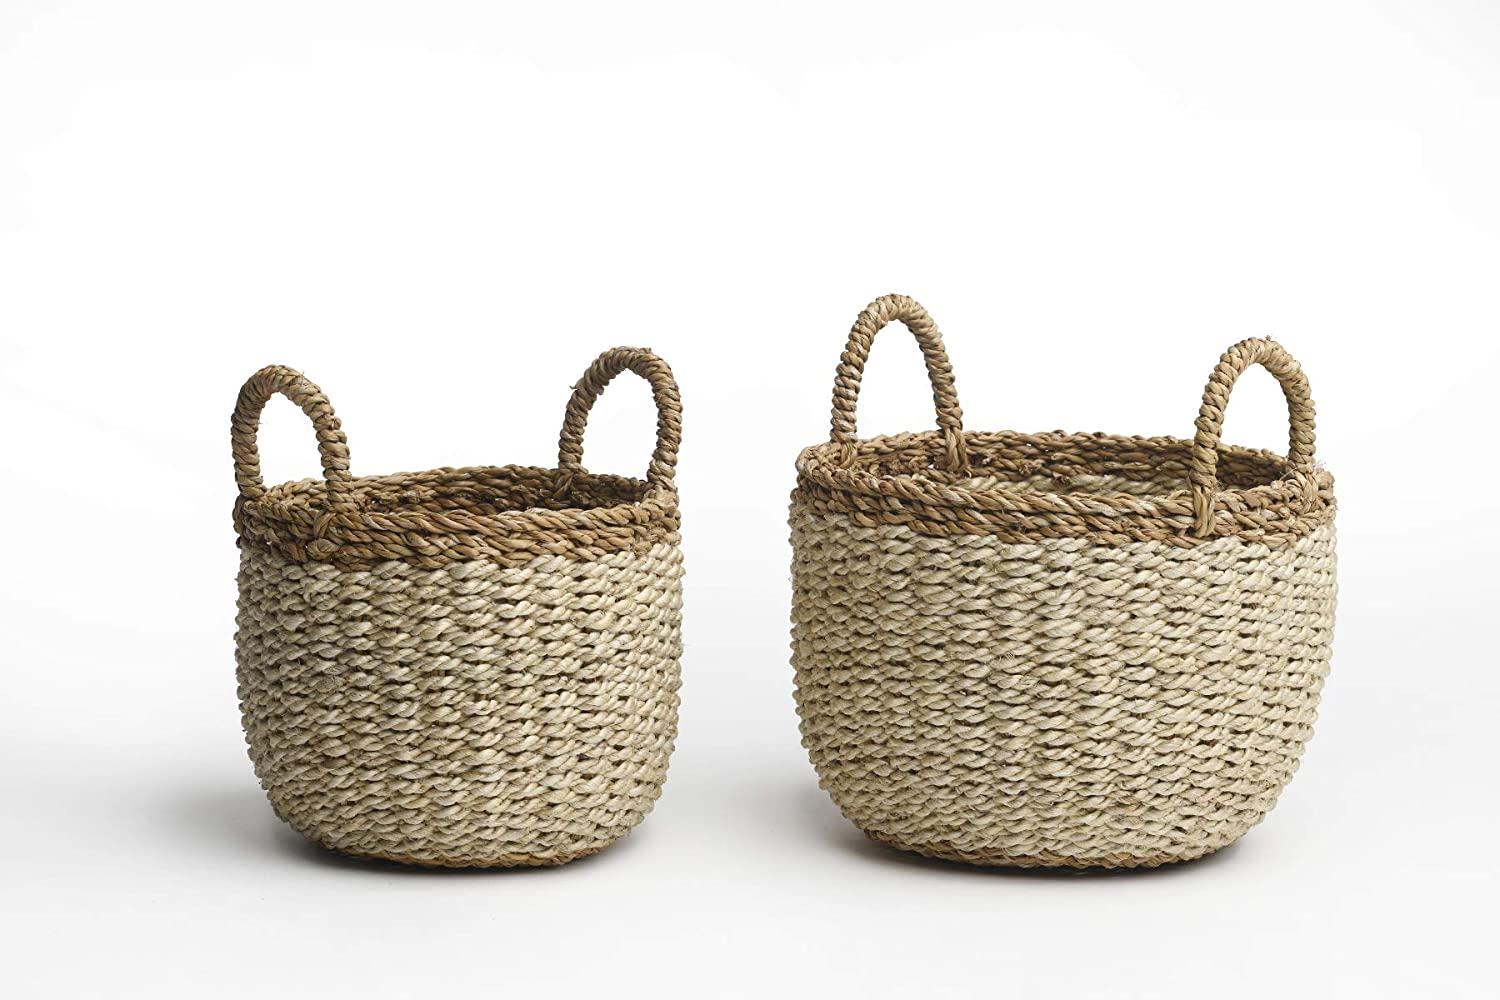 Fab Habitat Seagrass Sales Direct sale of manufacturer of SALE items from new works Storage Basket Wicker Set Baskets Pattern -